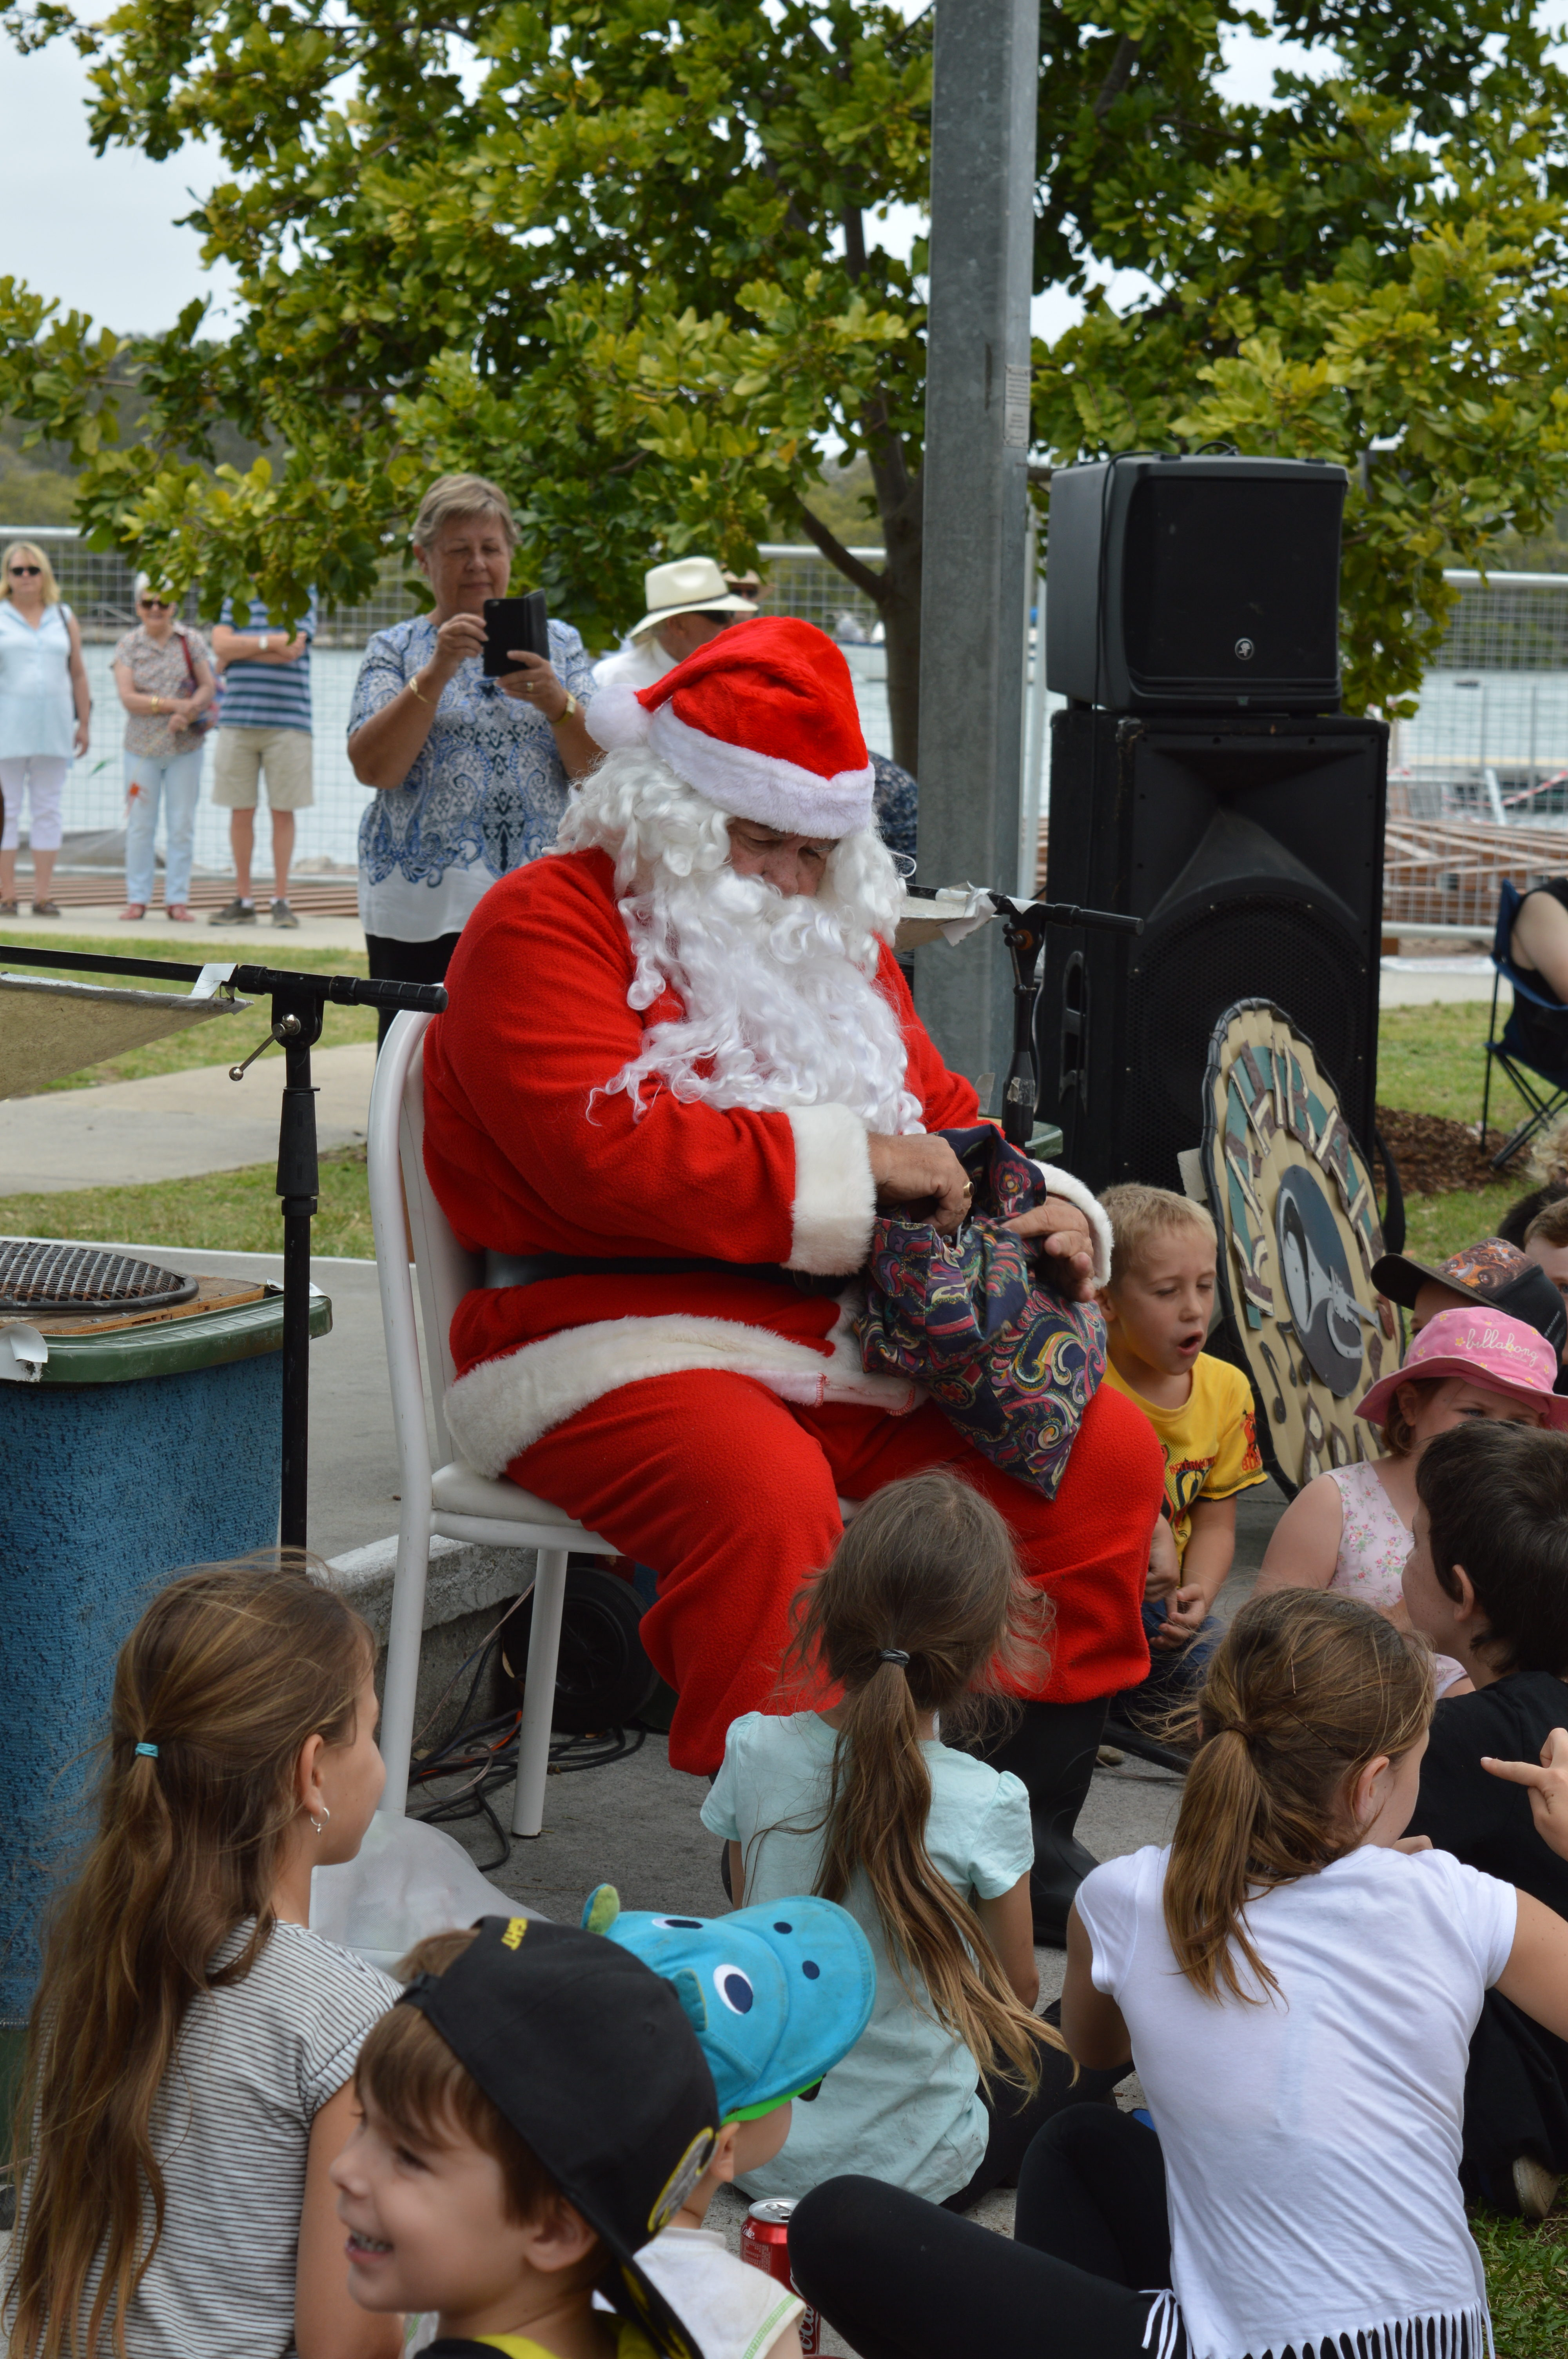 Santa hands out sweets to children after arriving on a Marine Rescue NSW boat.